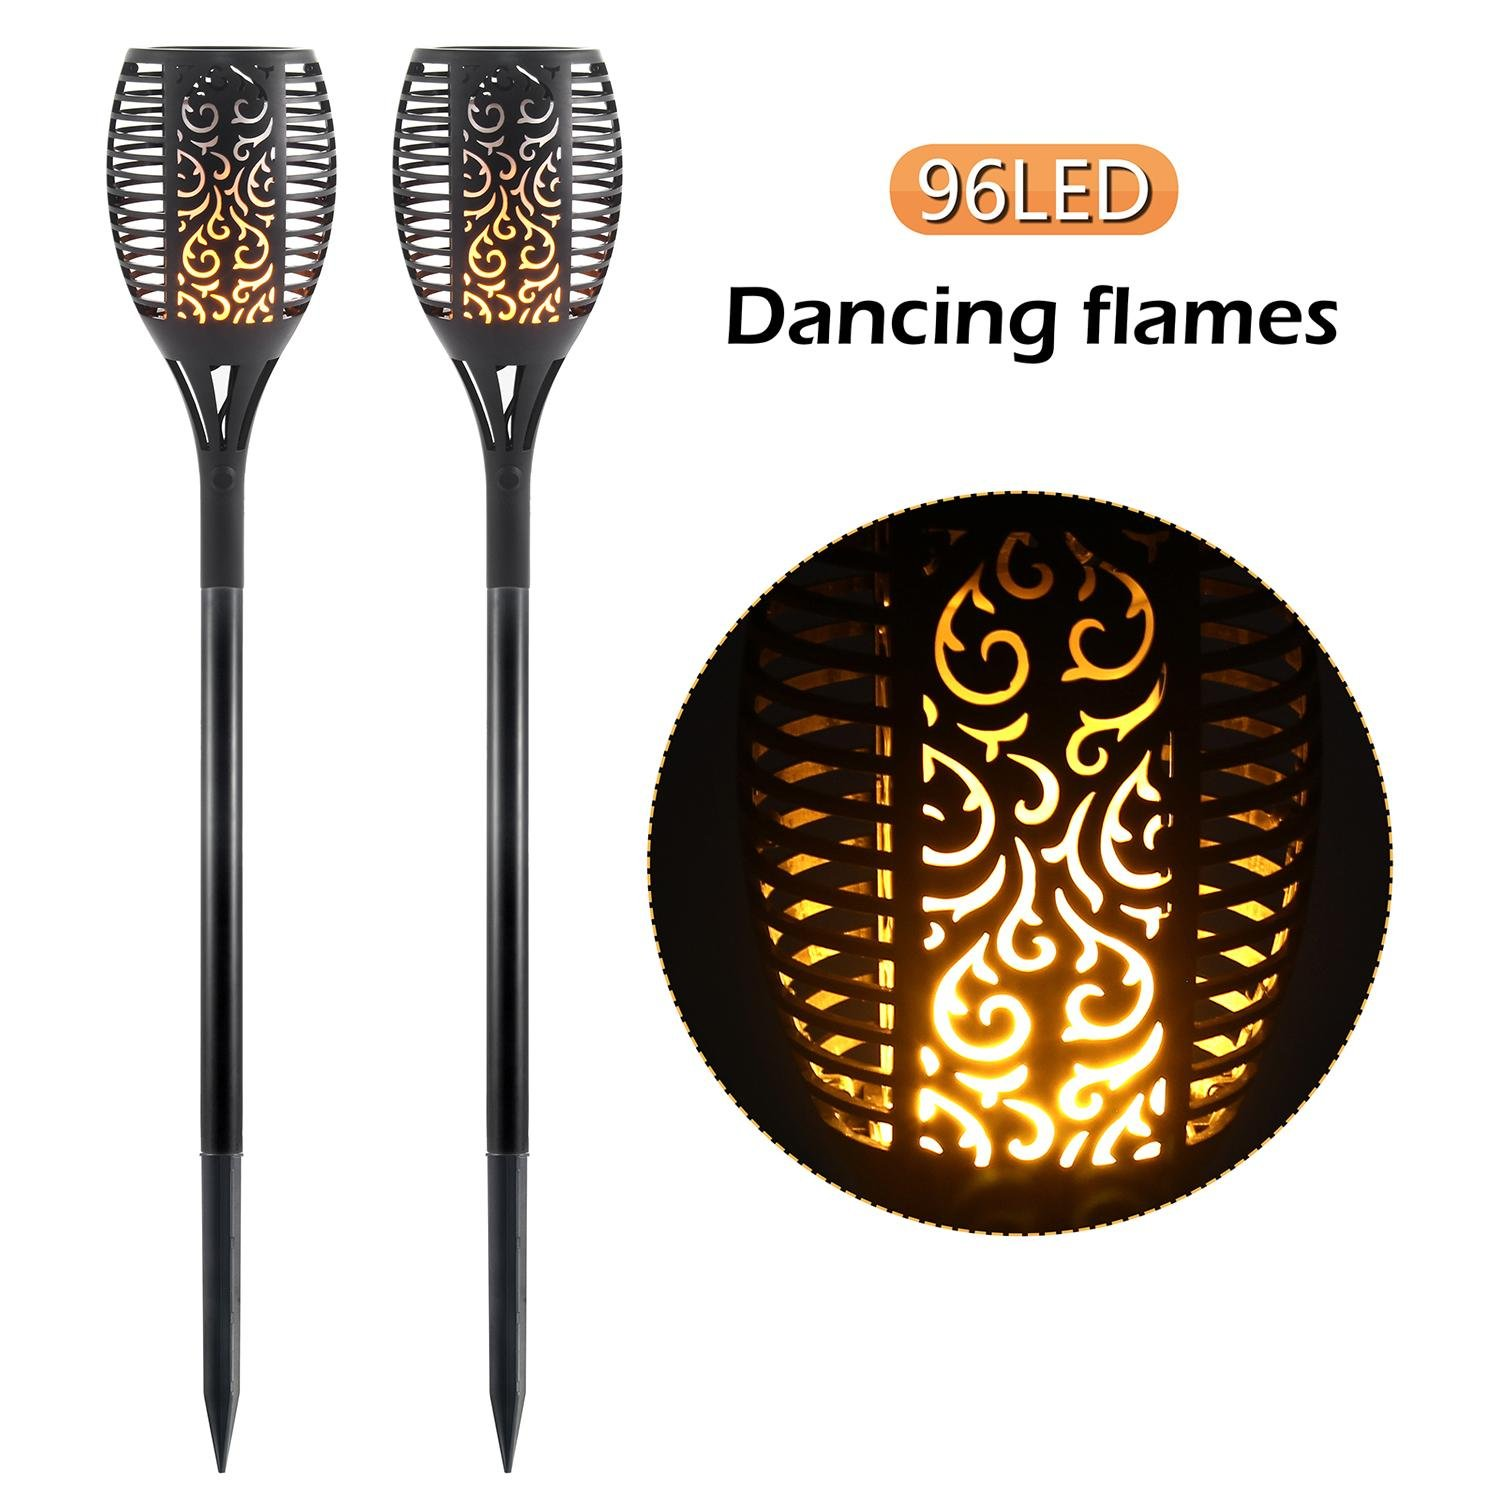 Aolvo Solar Torches Light, Path Dancing Flame Lighting 96 LED to Dawn Automatic On/Off, Flickering Garden Patio Waterproof Outdoor Landscape Lights (2 Pack)